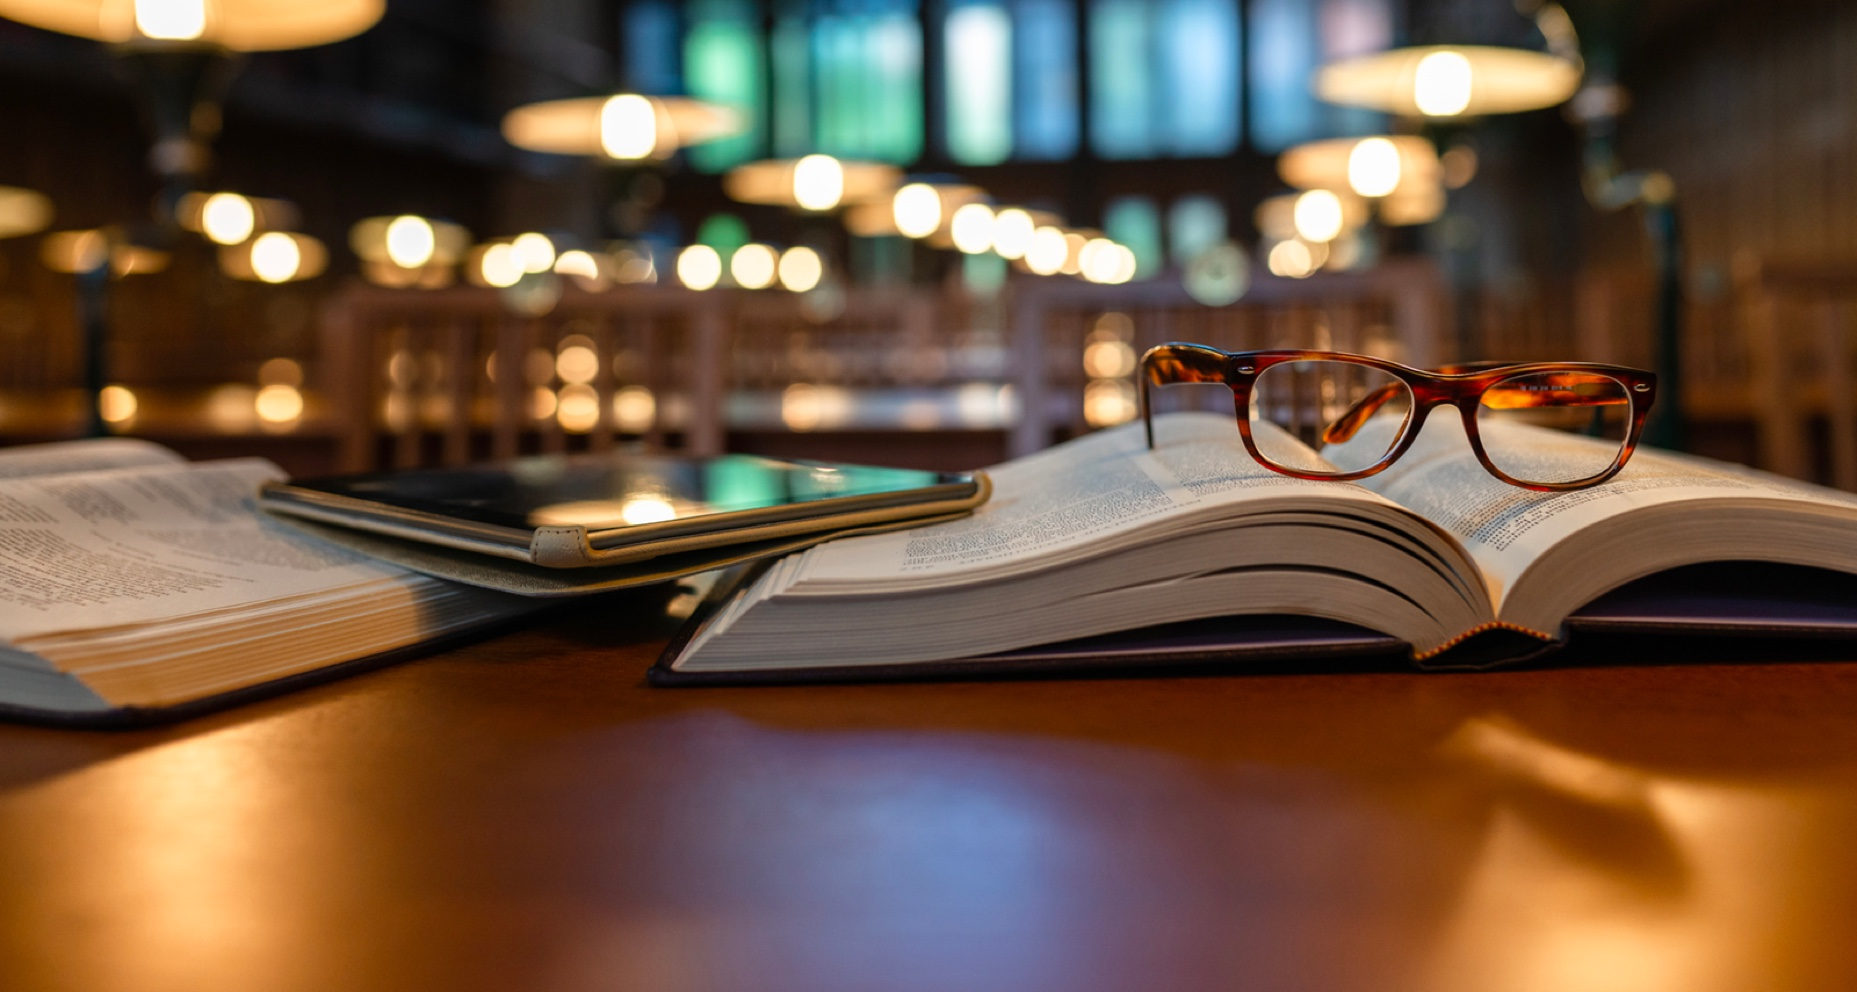 A pair of glasses on top of a book and e-tablet on a desk in a library.